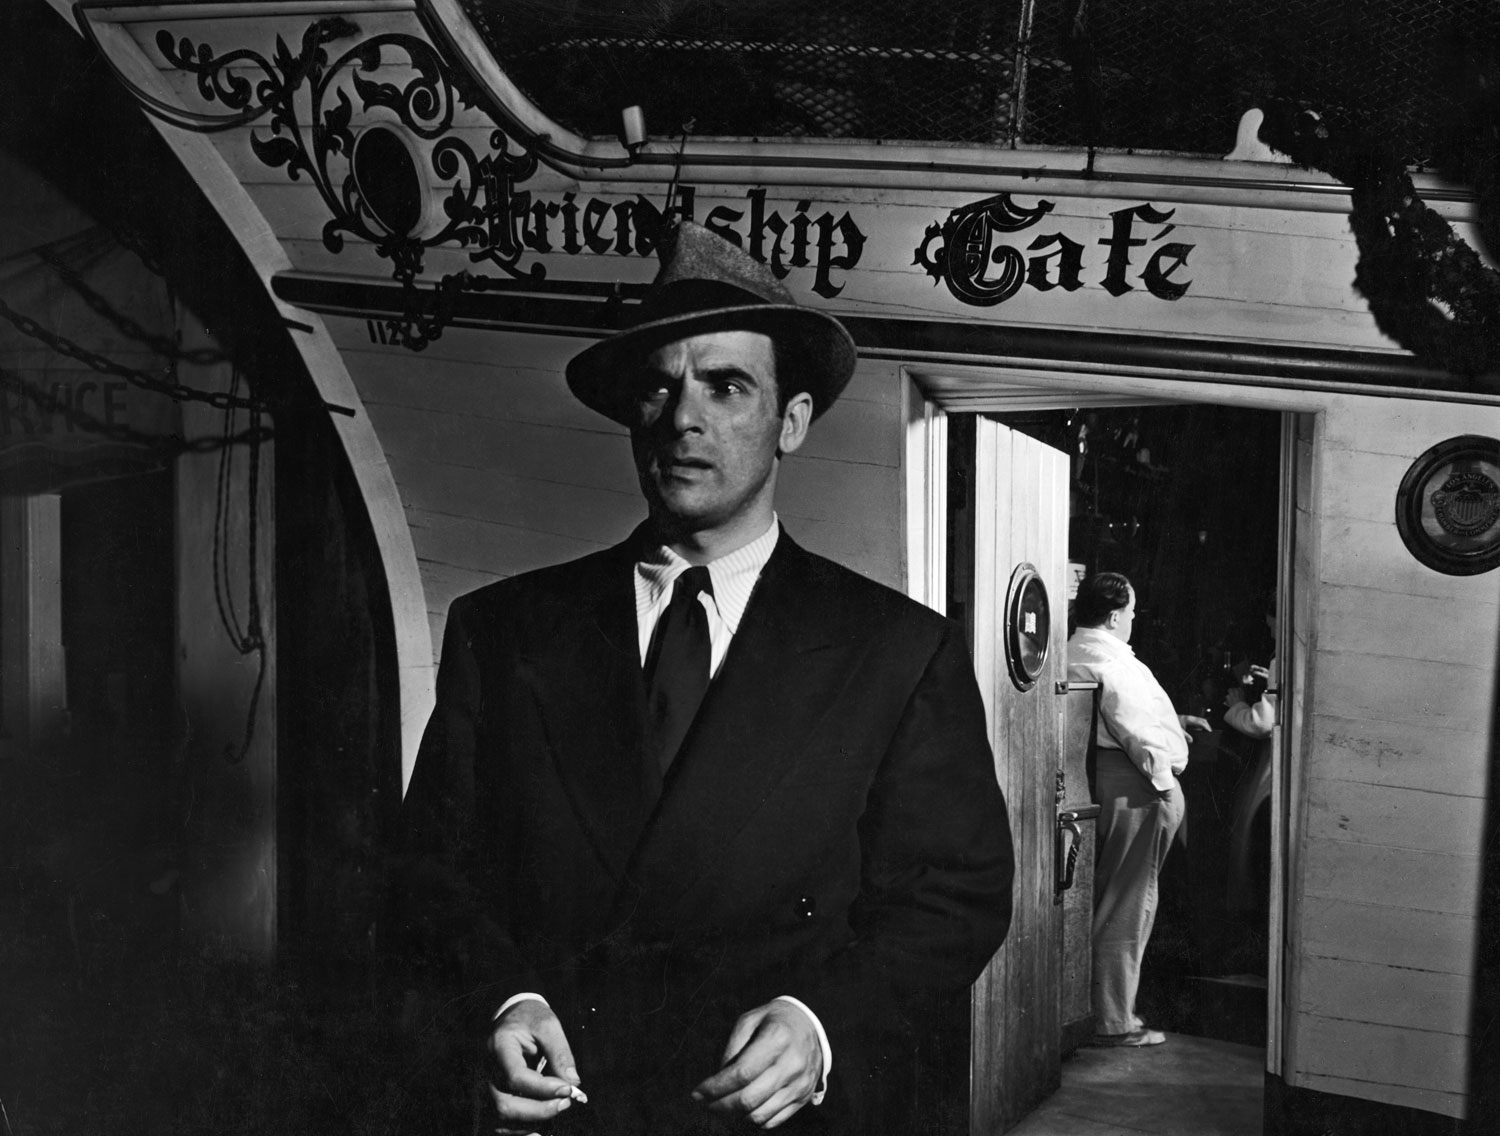 "<strong>Caption from LIFE.</strong> ""The mysterious man, whose ears were even more attentive than the manicurist's boyfriend, leaves the cafe, remembering these important words: 'Troopships ... Australia ... Friday at midnight.' His business is to check all rumors, not pass them along for social conversation."""